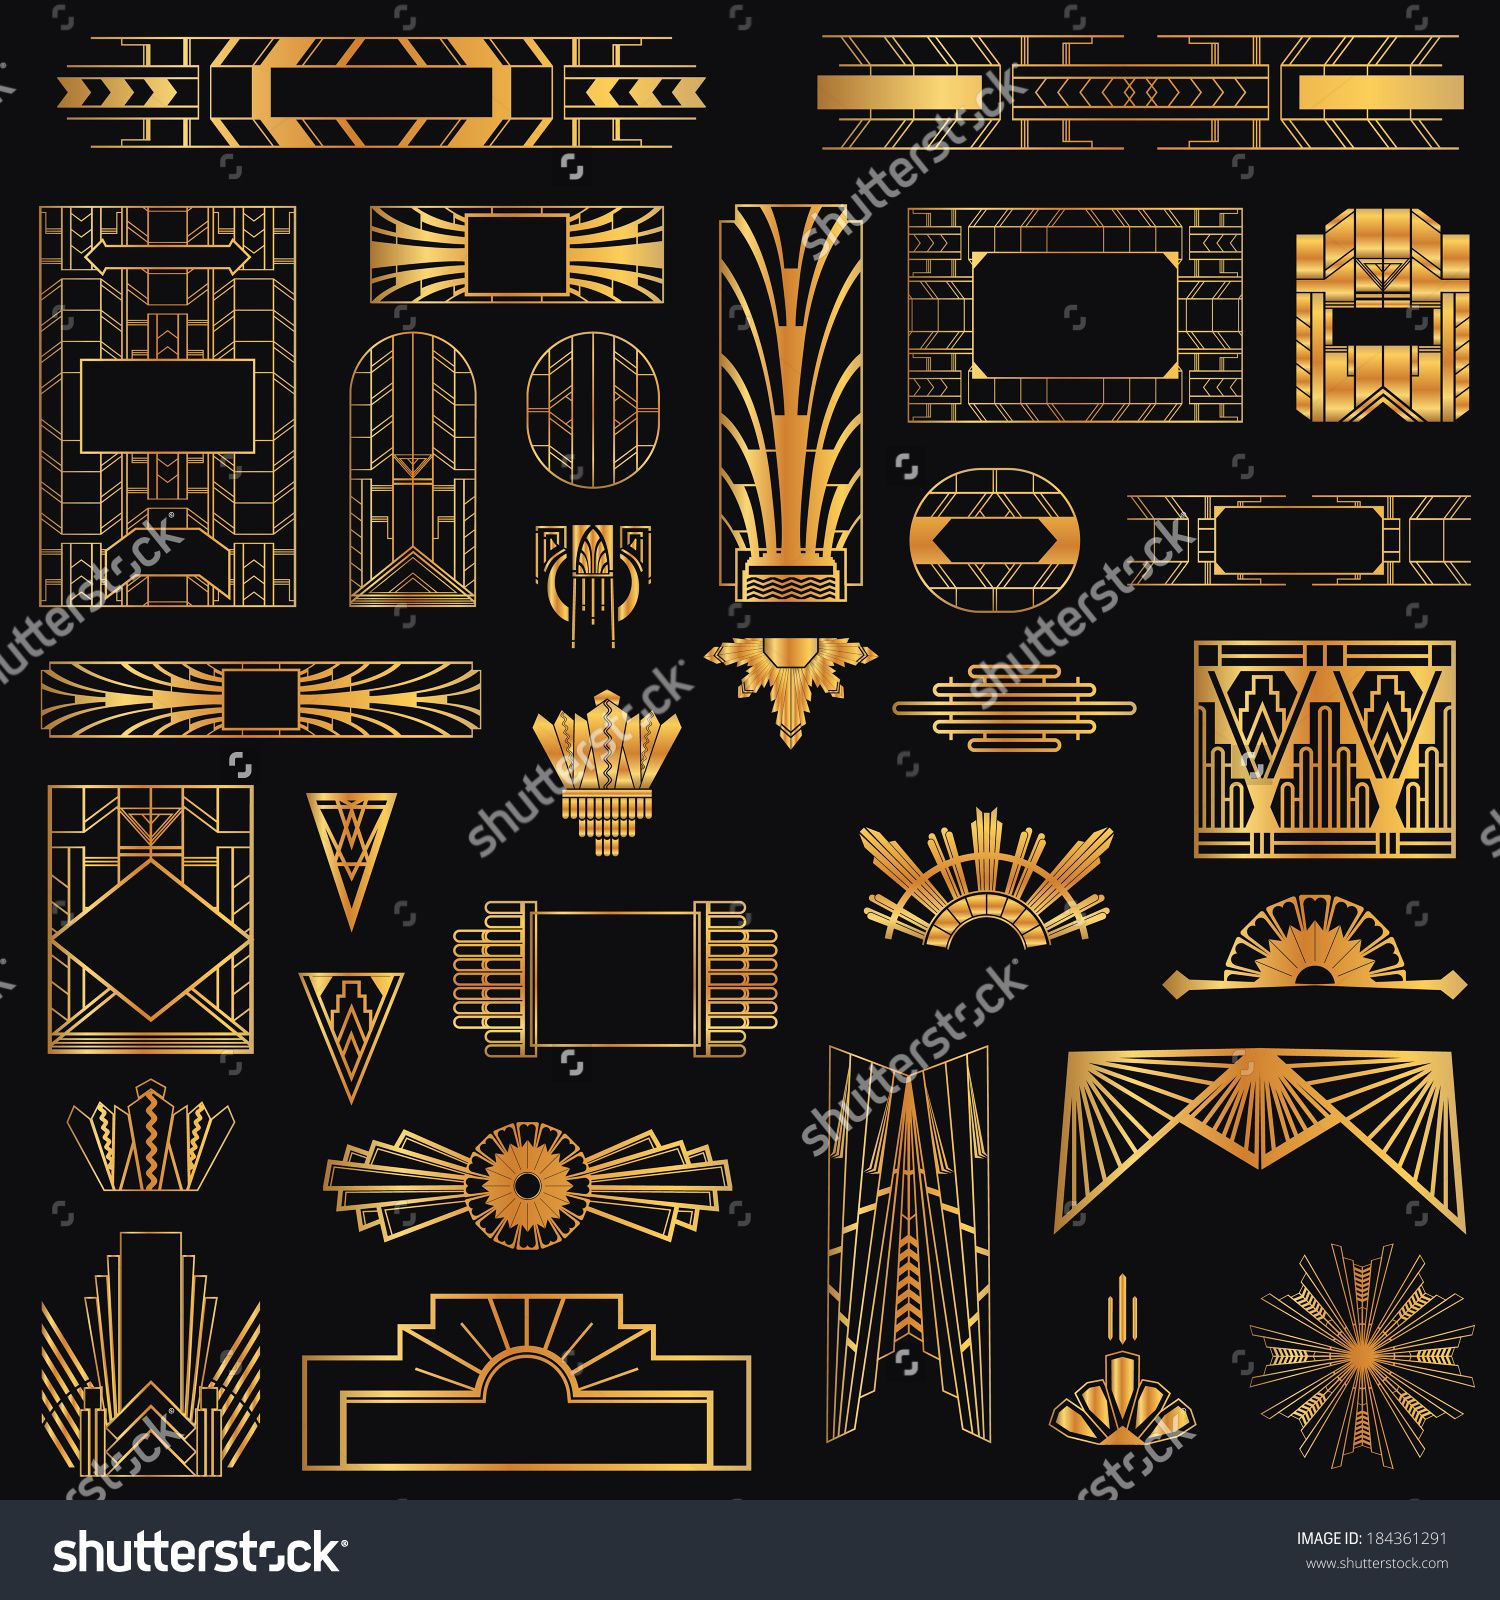 Art Design Ideas : Art deco elements graphic designs google search